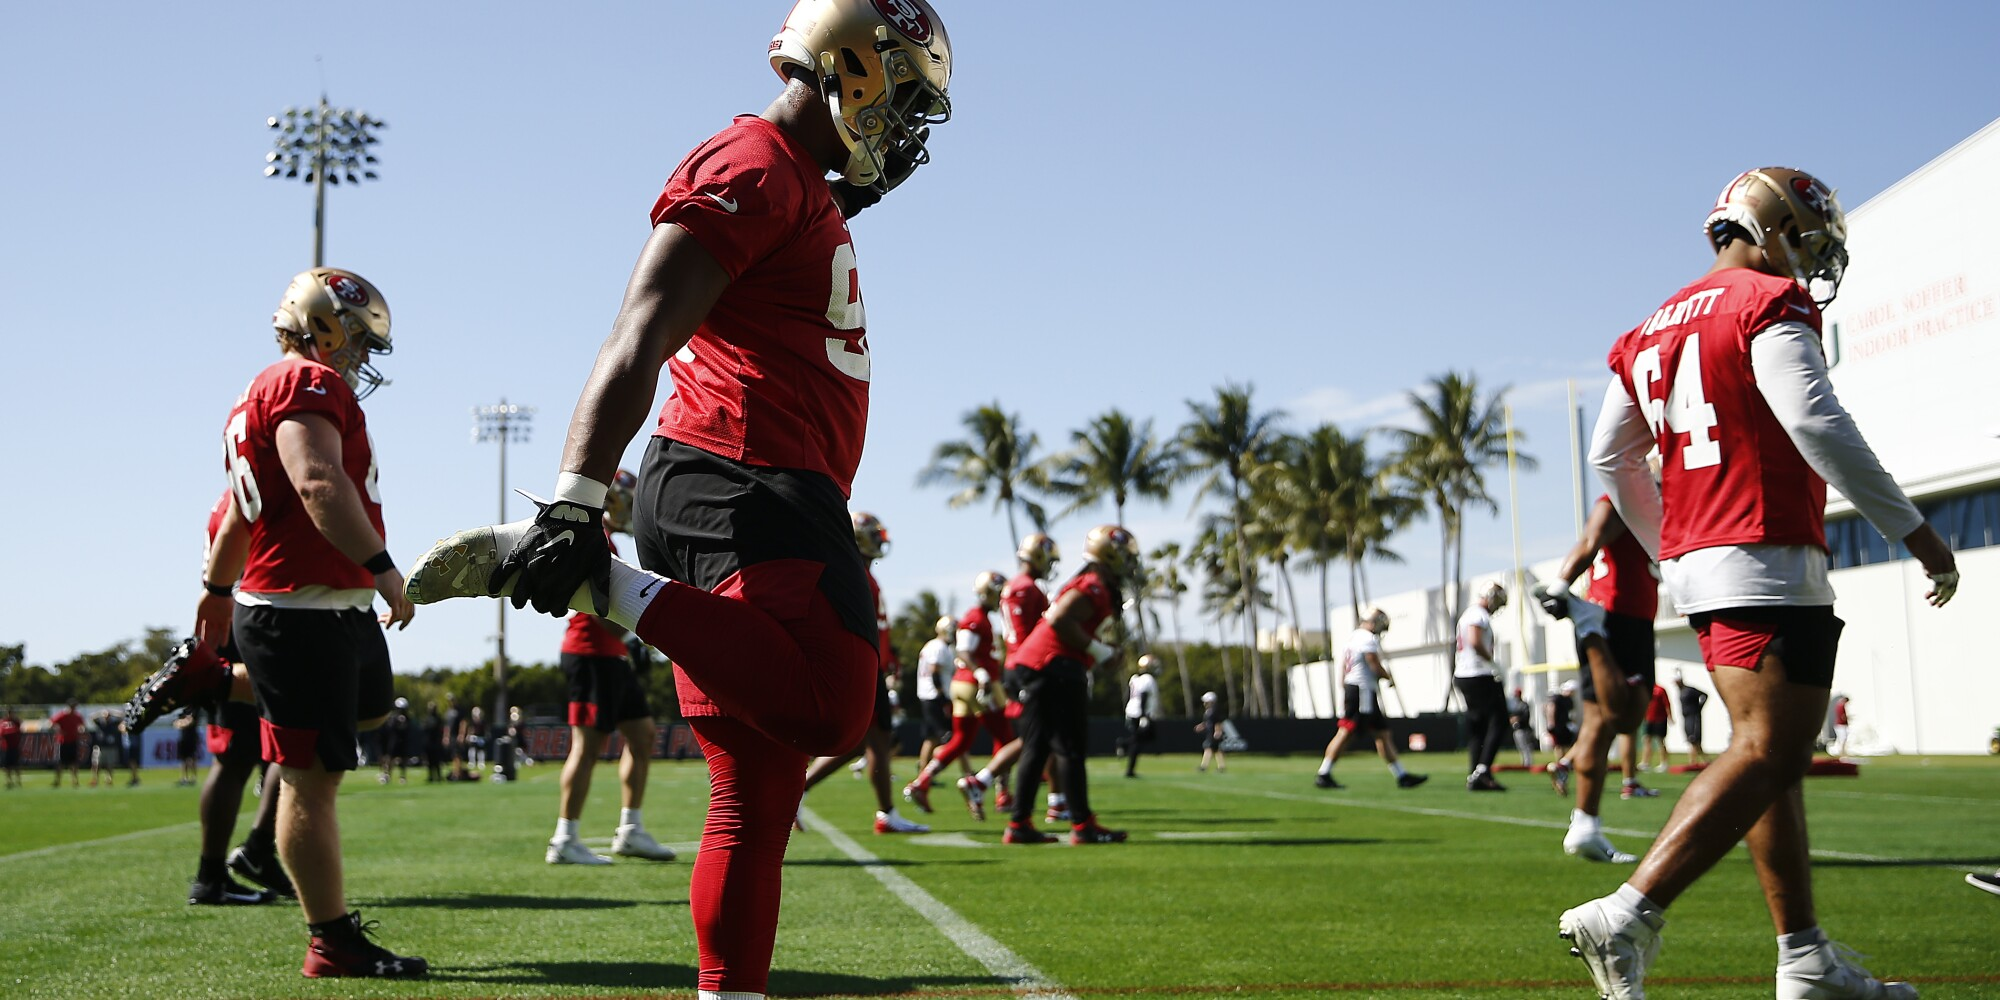 The San Francisco 49ers stretch during practice at the University of Miami on Thursday.